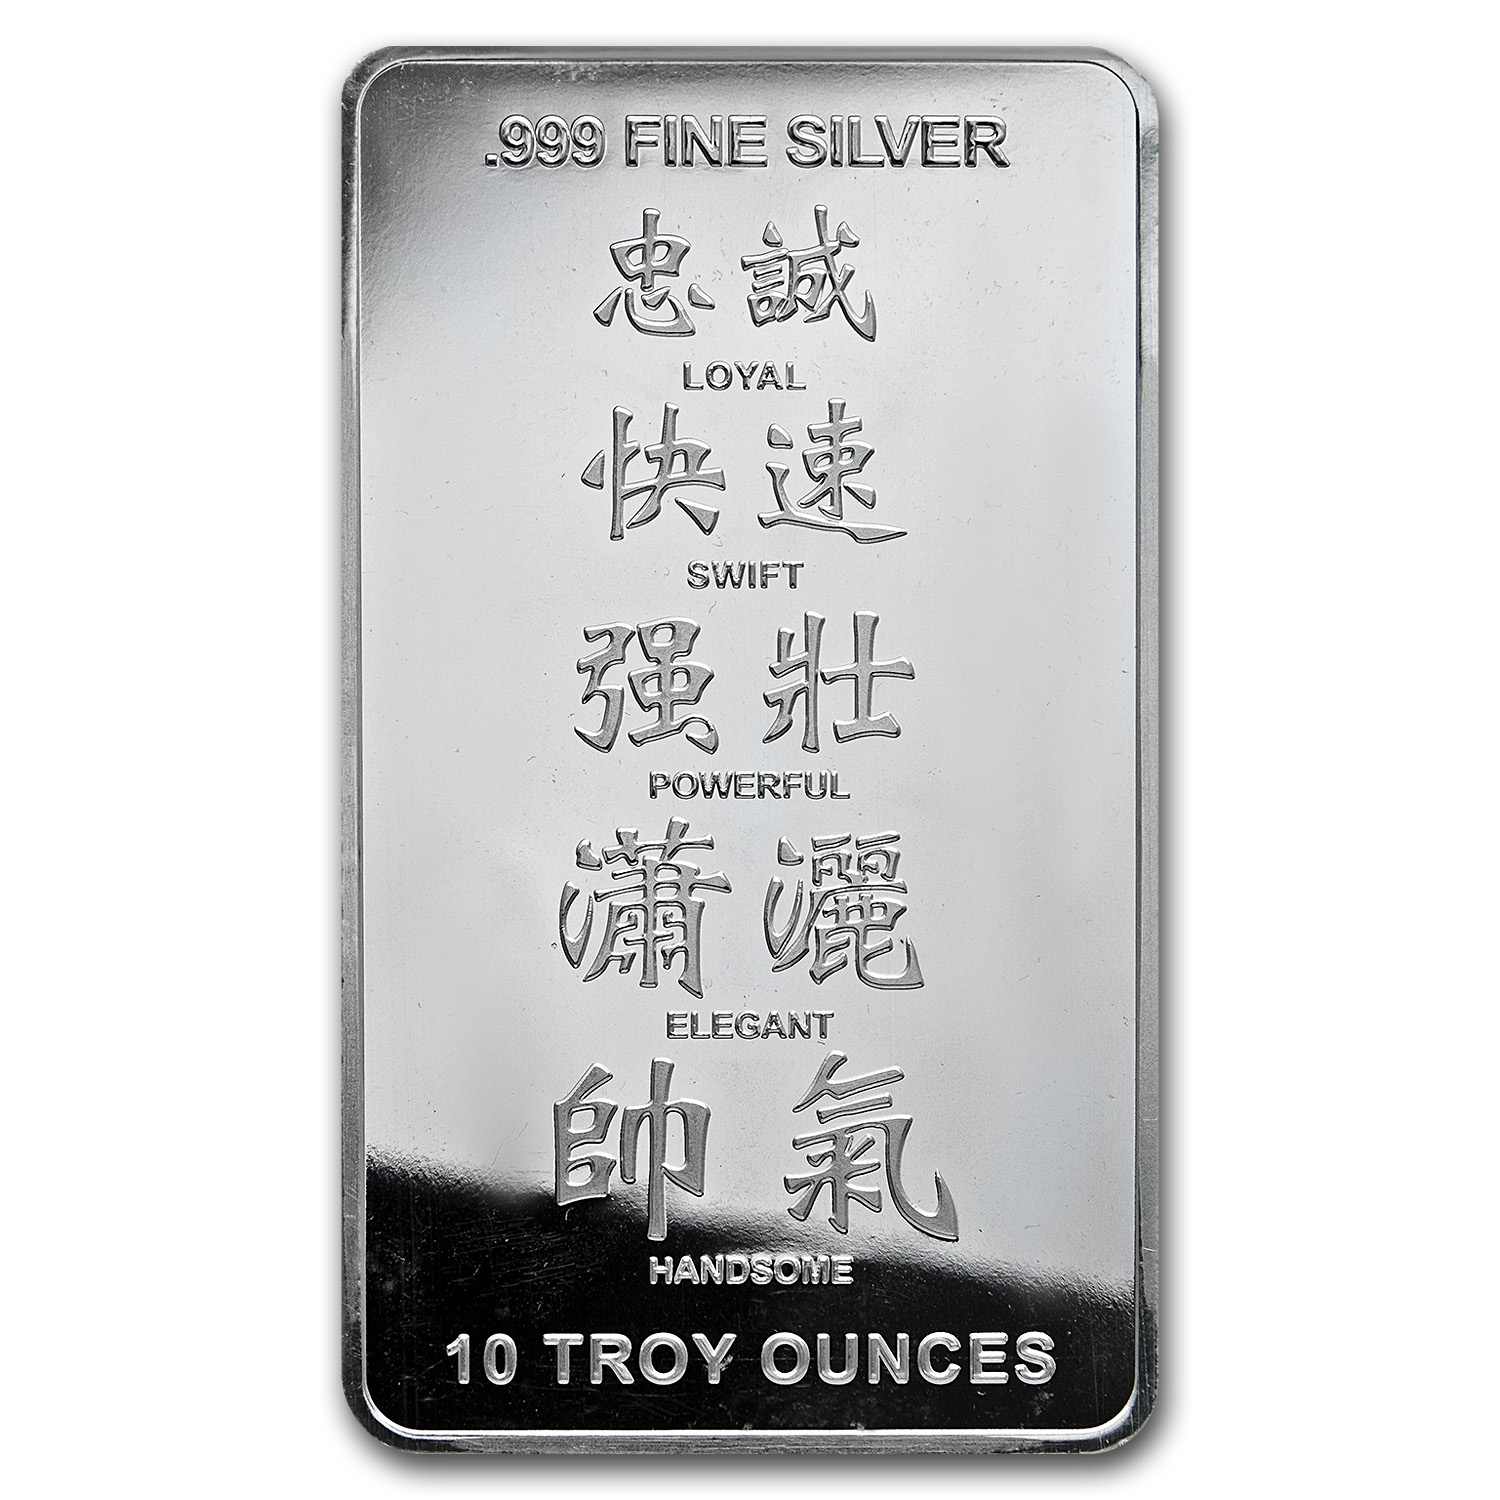 10 oz Silver Bars - APMEX (2014 Year of the Horse)